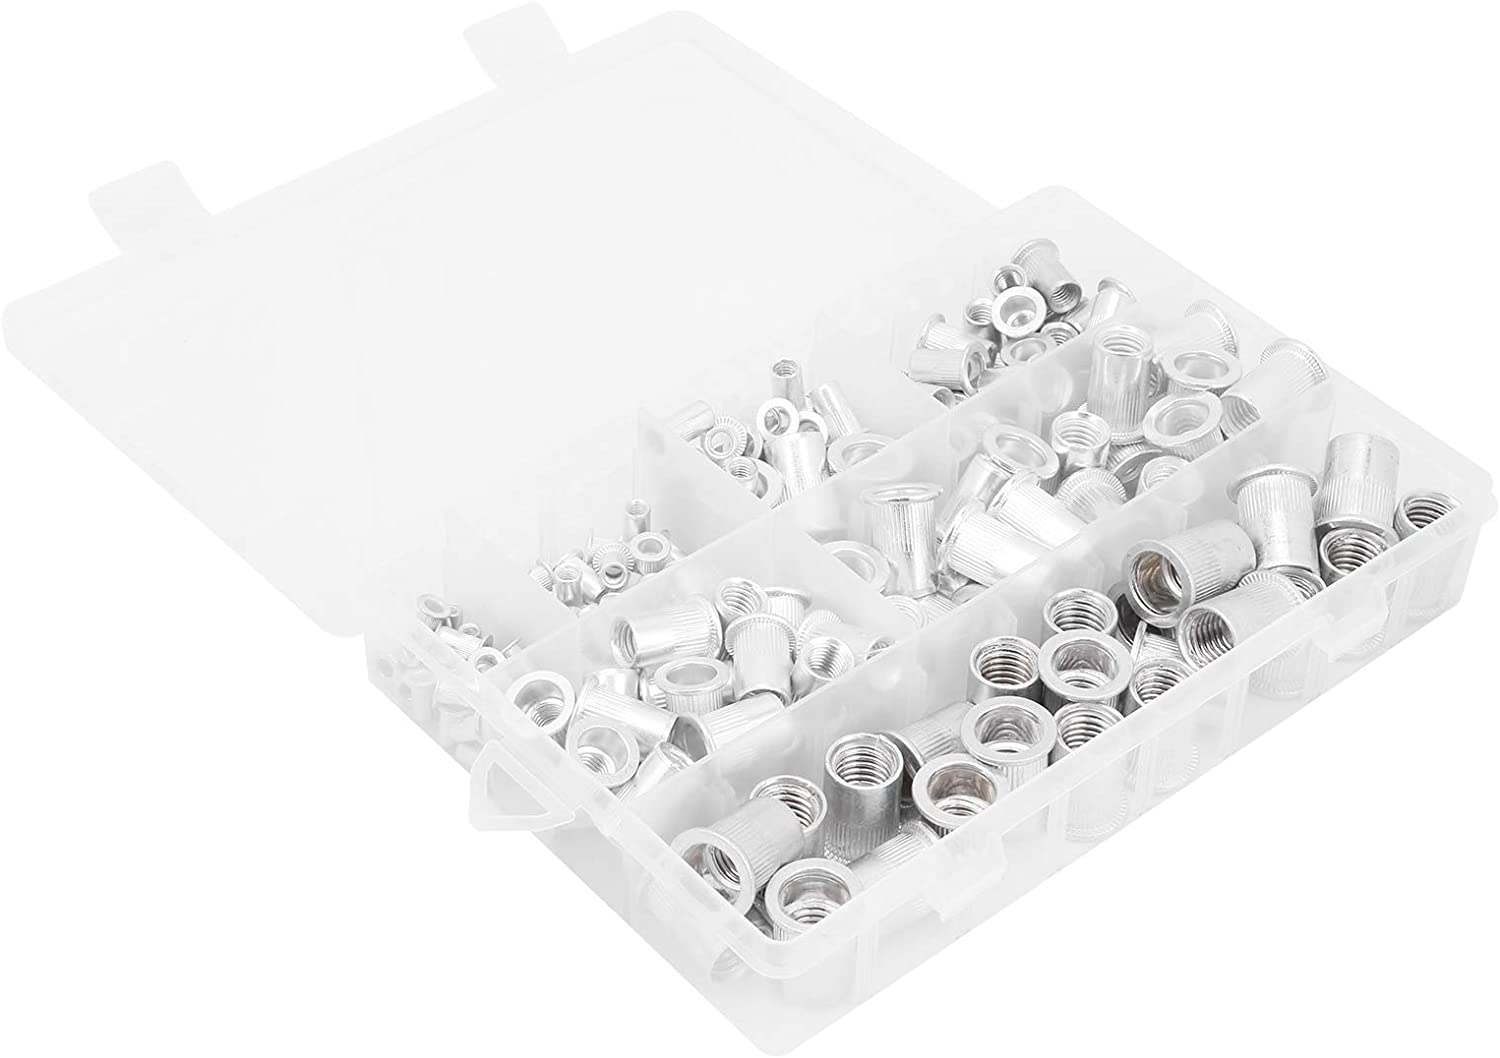 Switches Automobiles Insert Nutsert Firm and Durable Rivet Nut Aluminum Material for Elevators